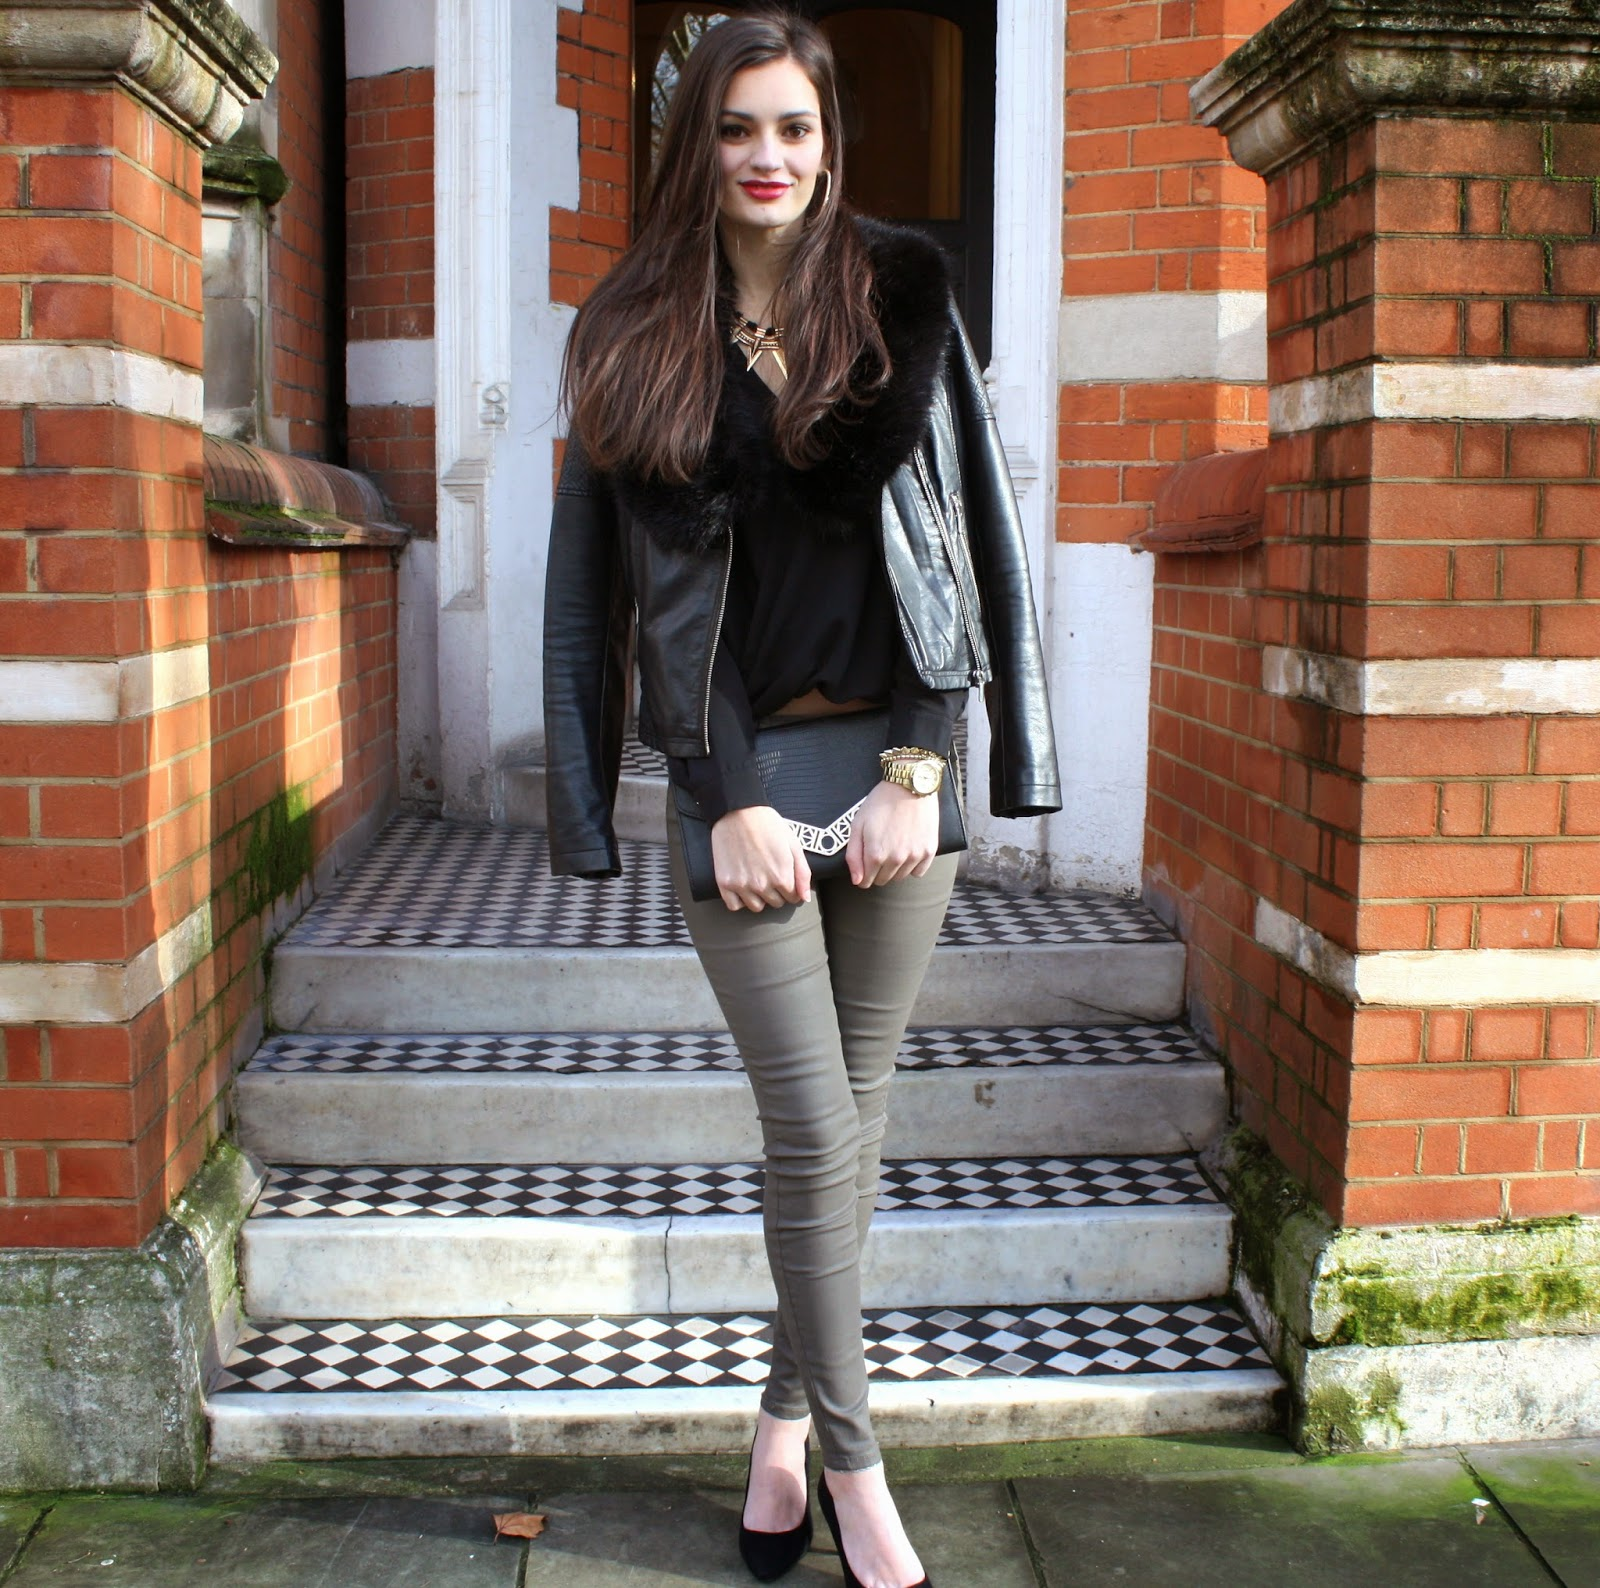 Not Your Typical Leather Trousers